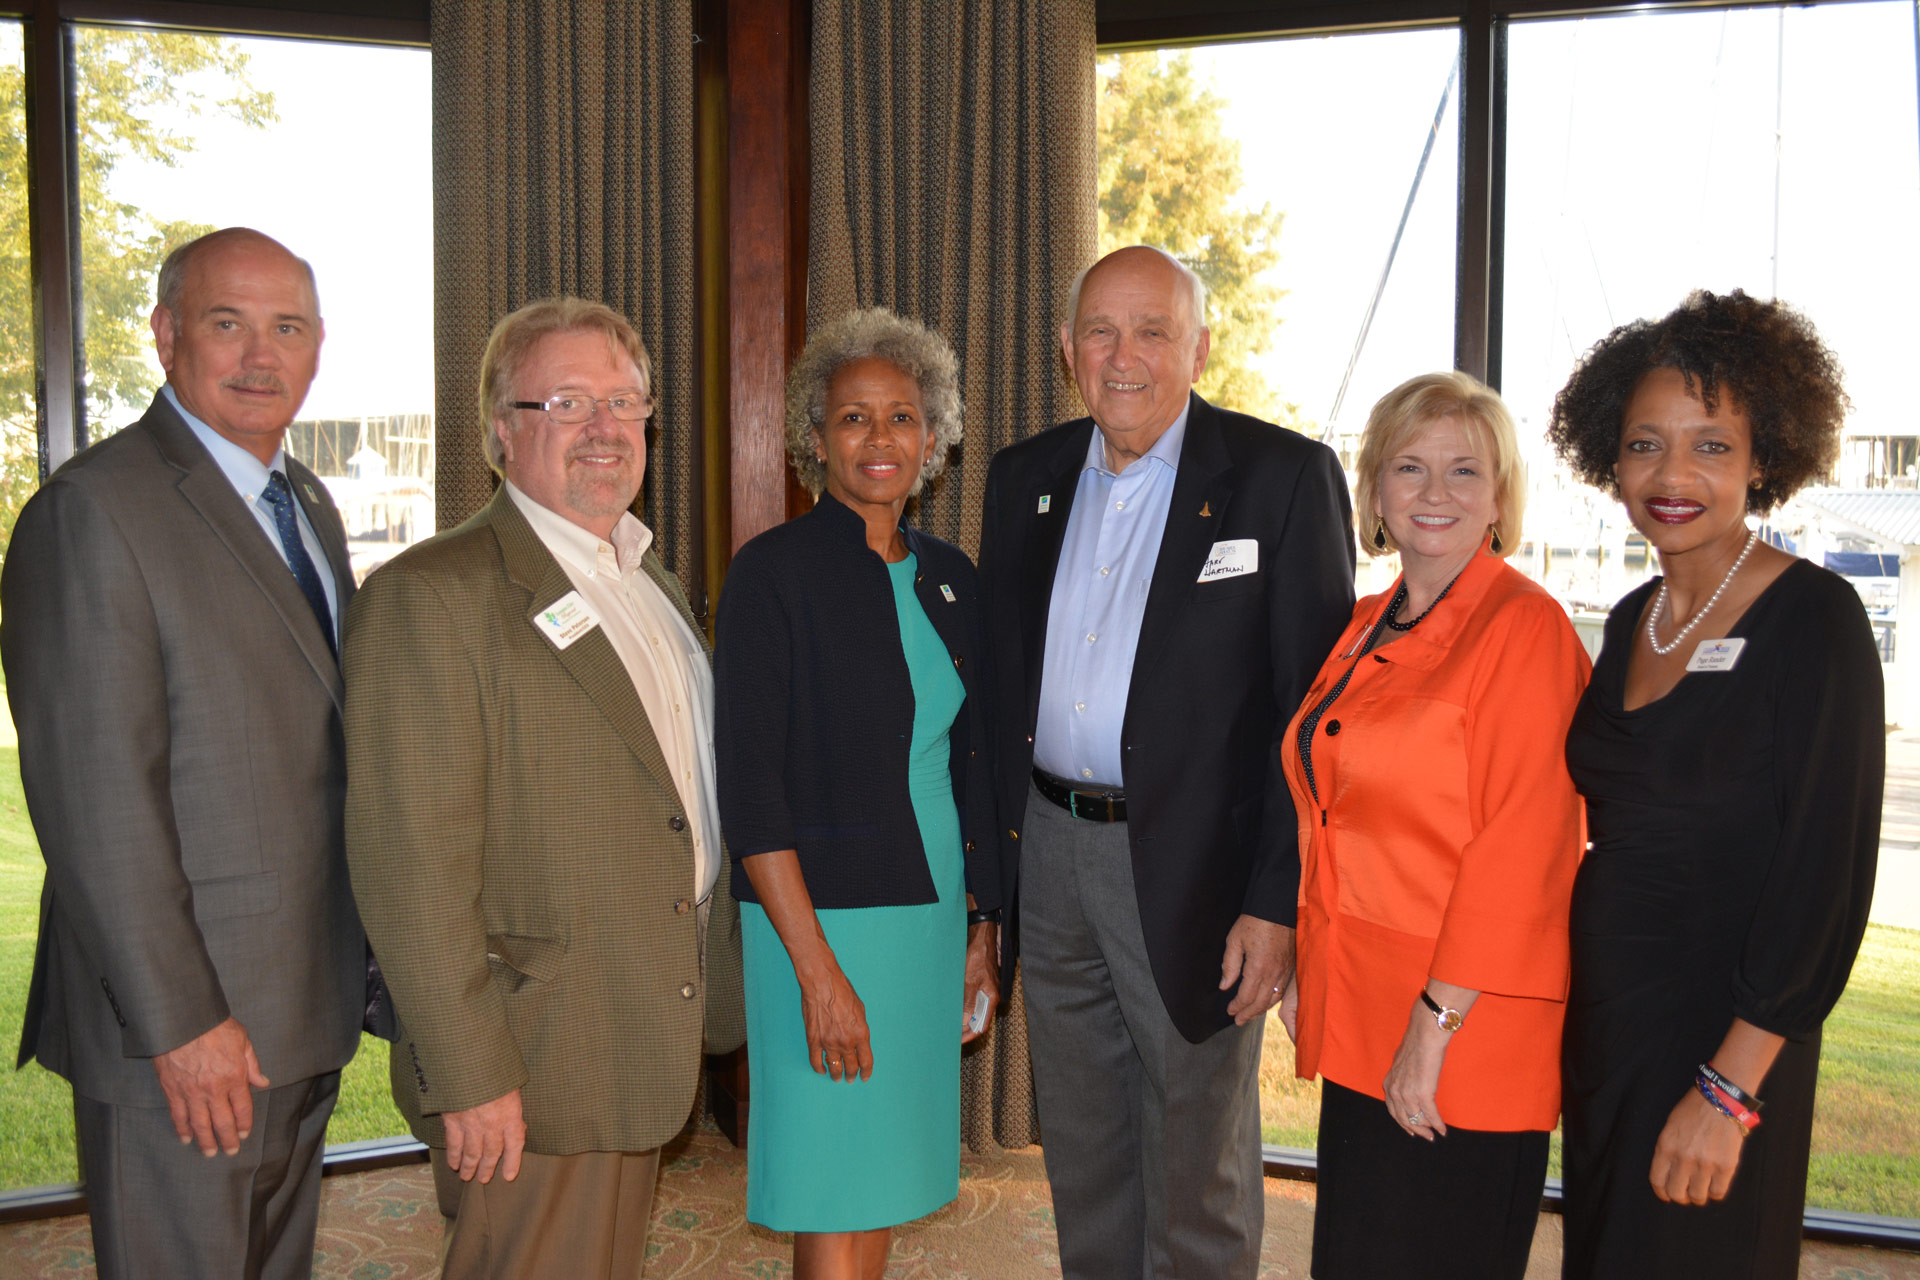 Area chambers, BAHEP host welcome event